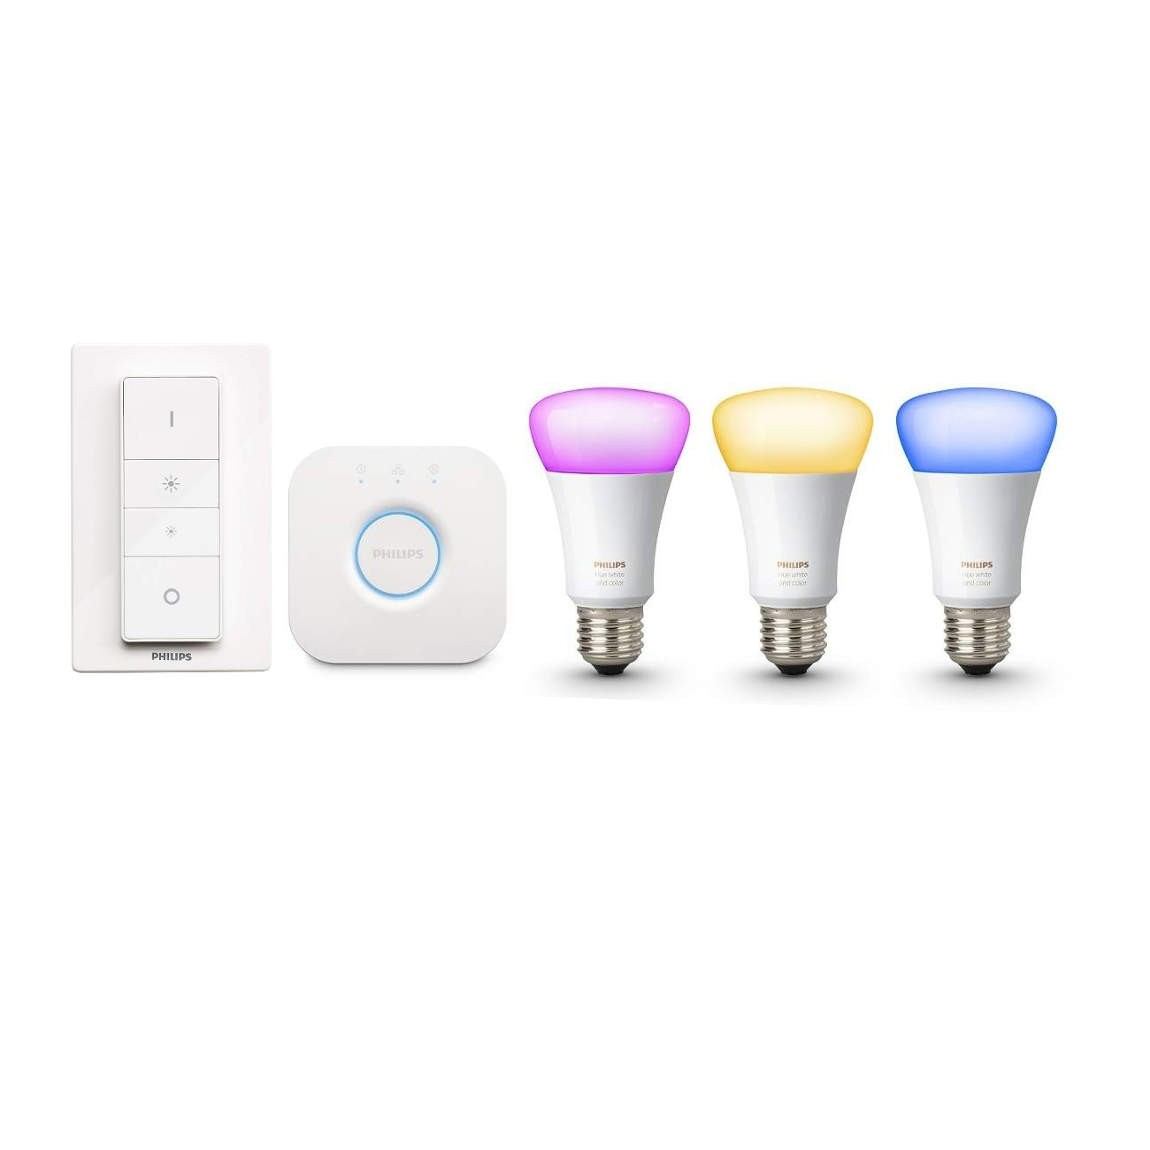 Philips Hue White and Color Ambiance E27 Starte...